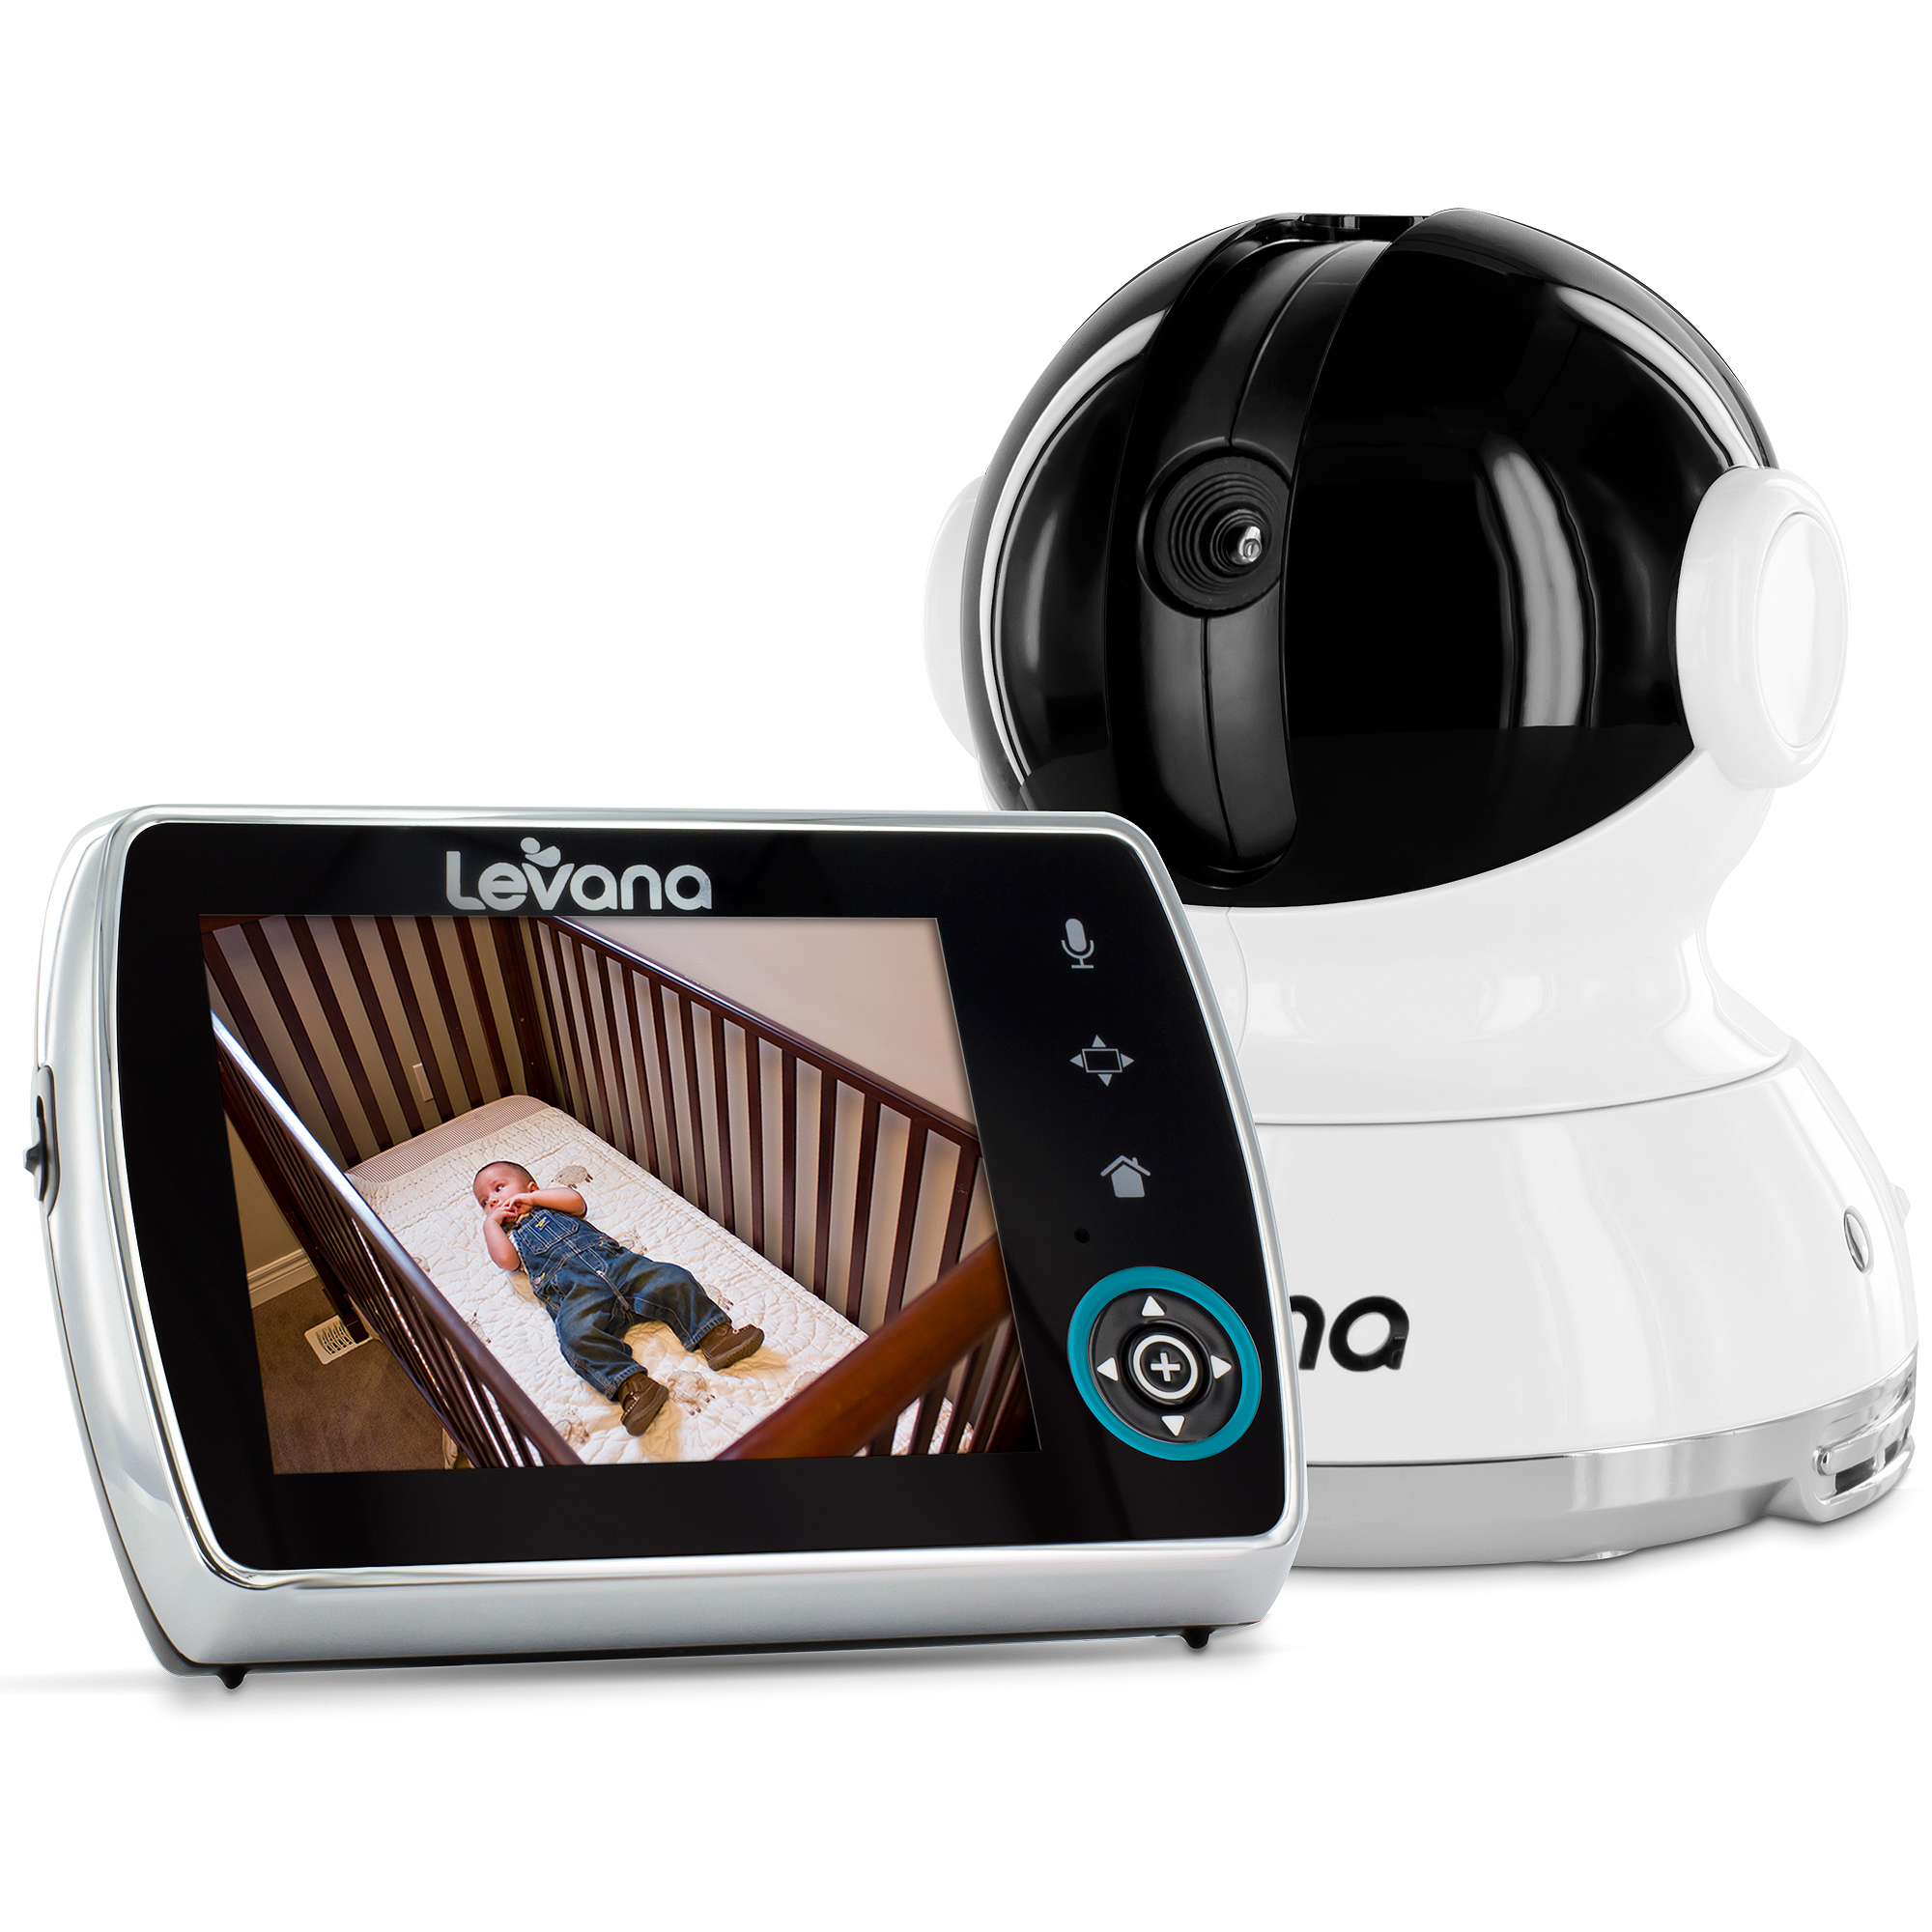 "Levana Keera 3.5"" LCD Digital Baby Video Monitor with 24-Hour Battery, Touch Panel, Talk to Baby Intercom and SD Video Recording, 32012"